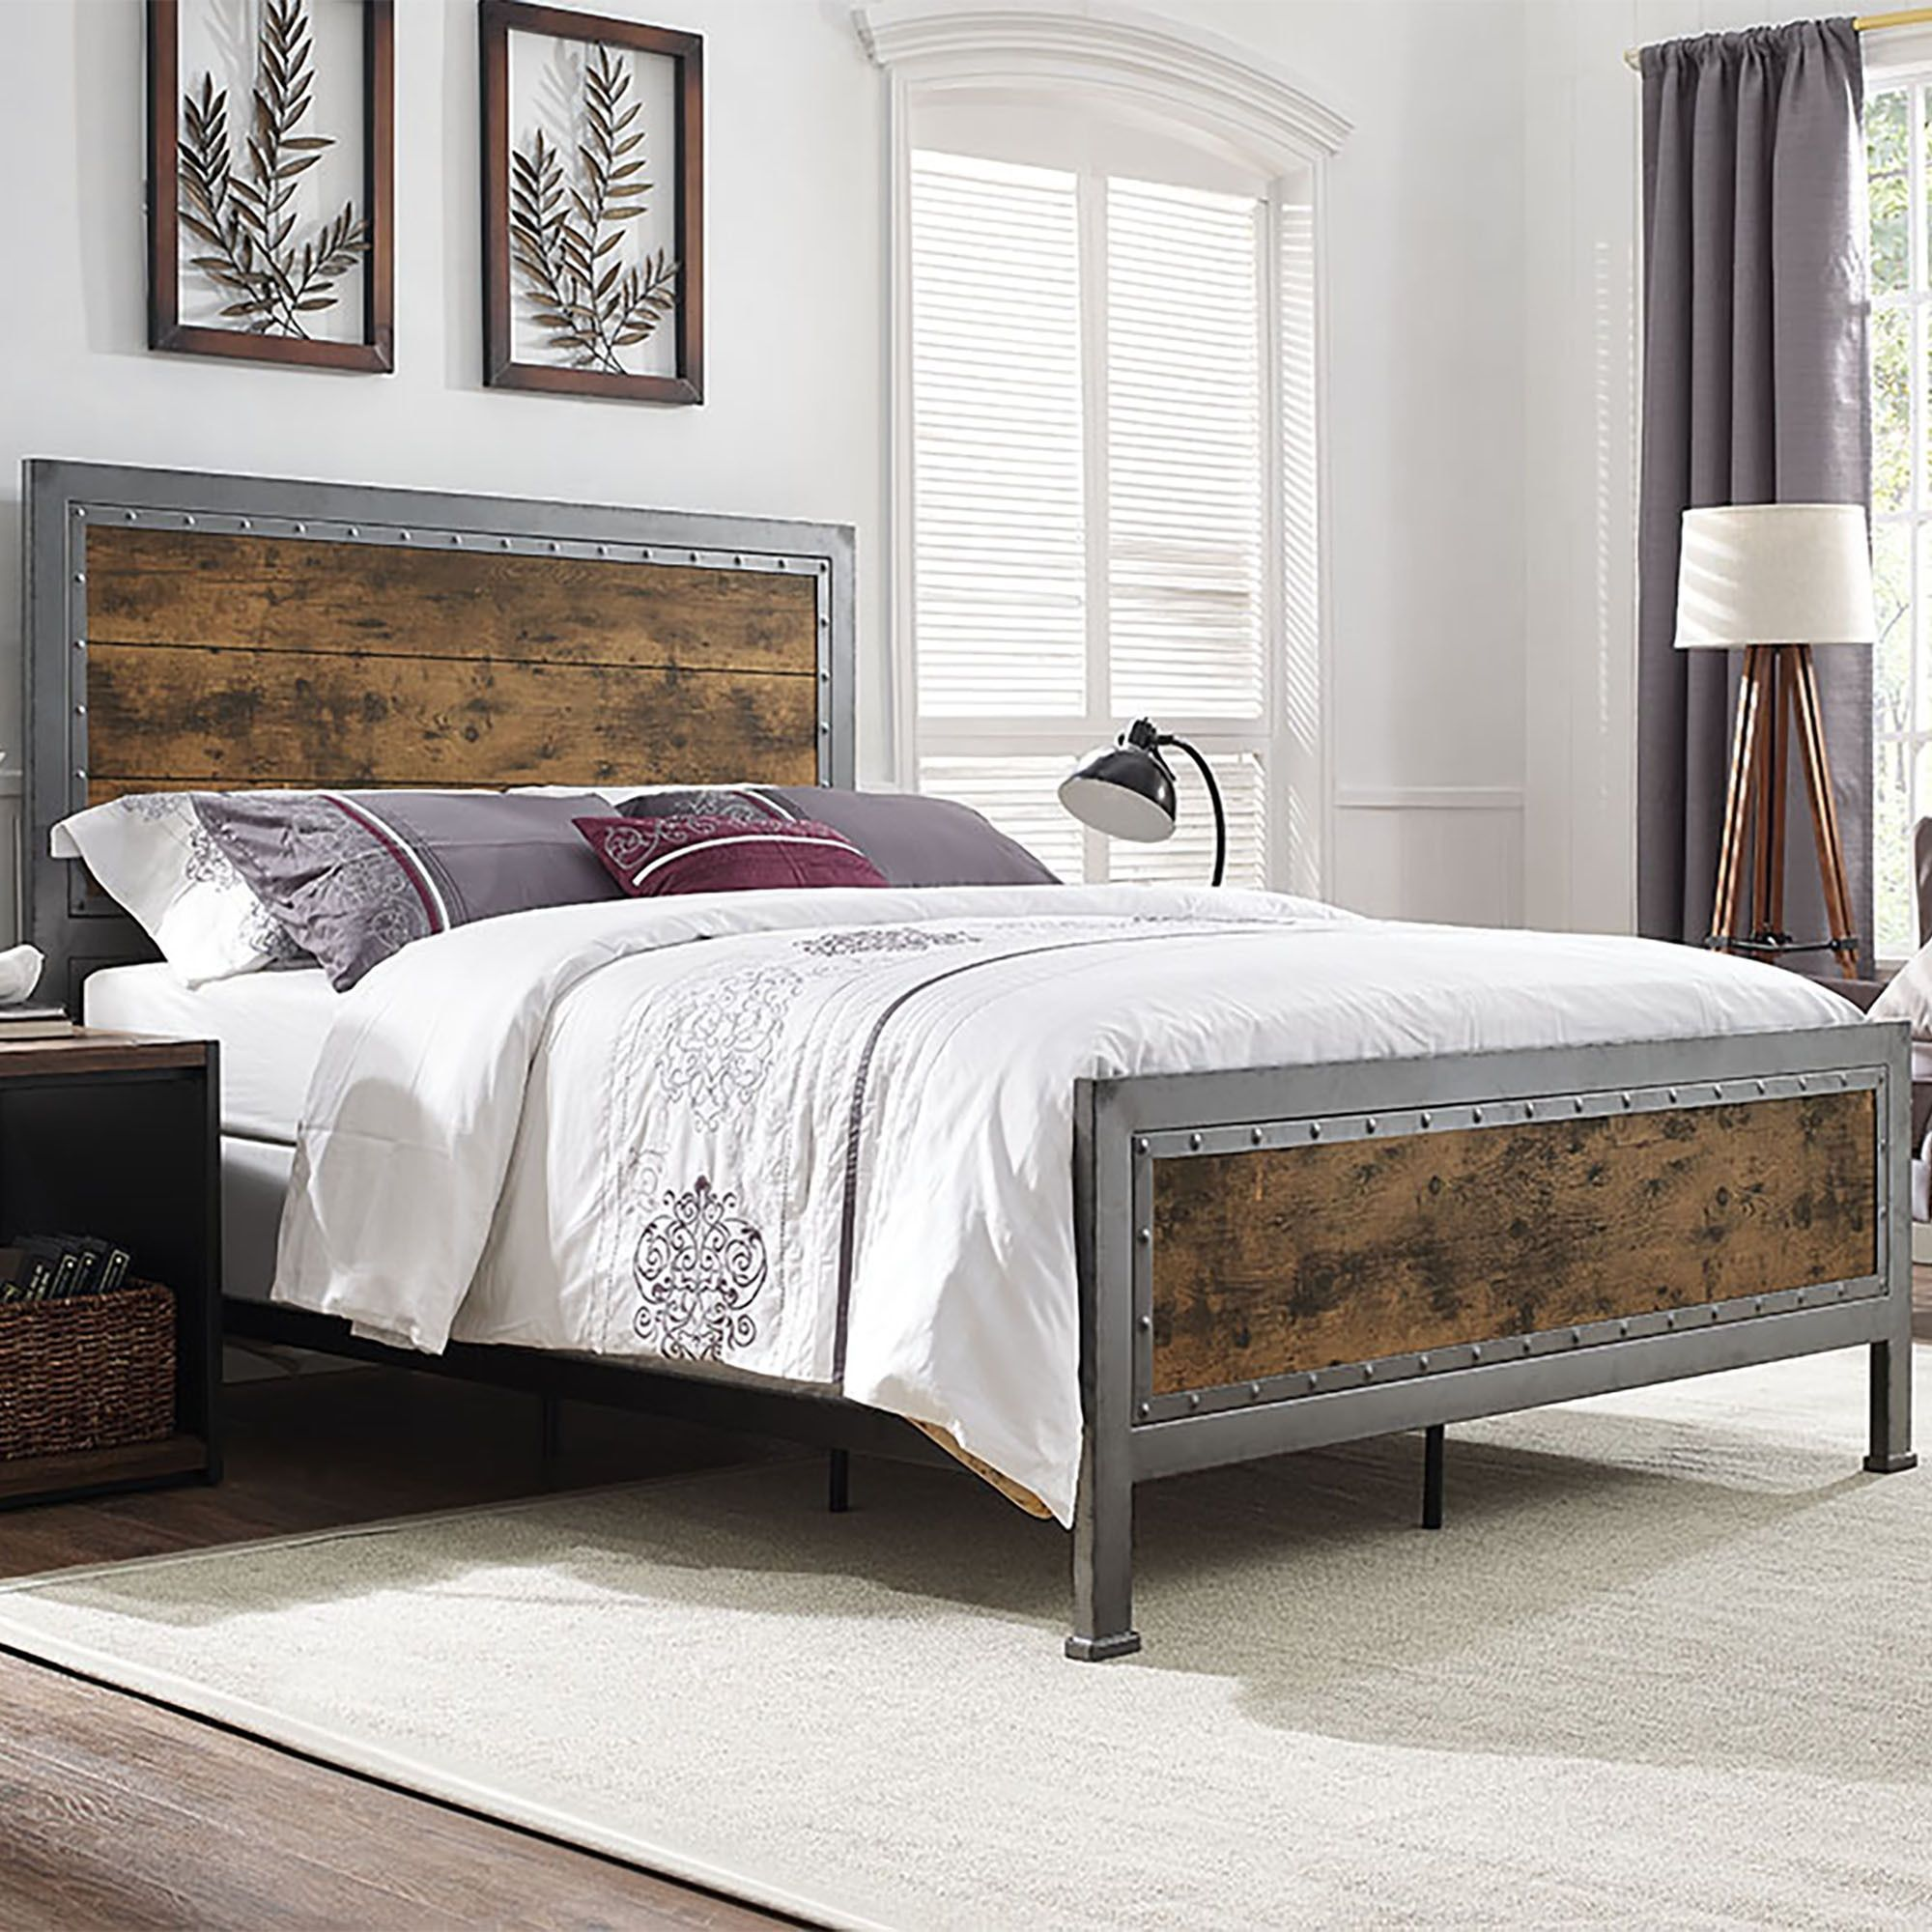 Queen Size Industrial Wood and Metal Bed - Brown, Black